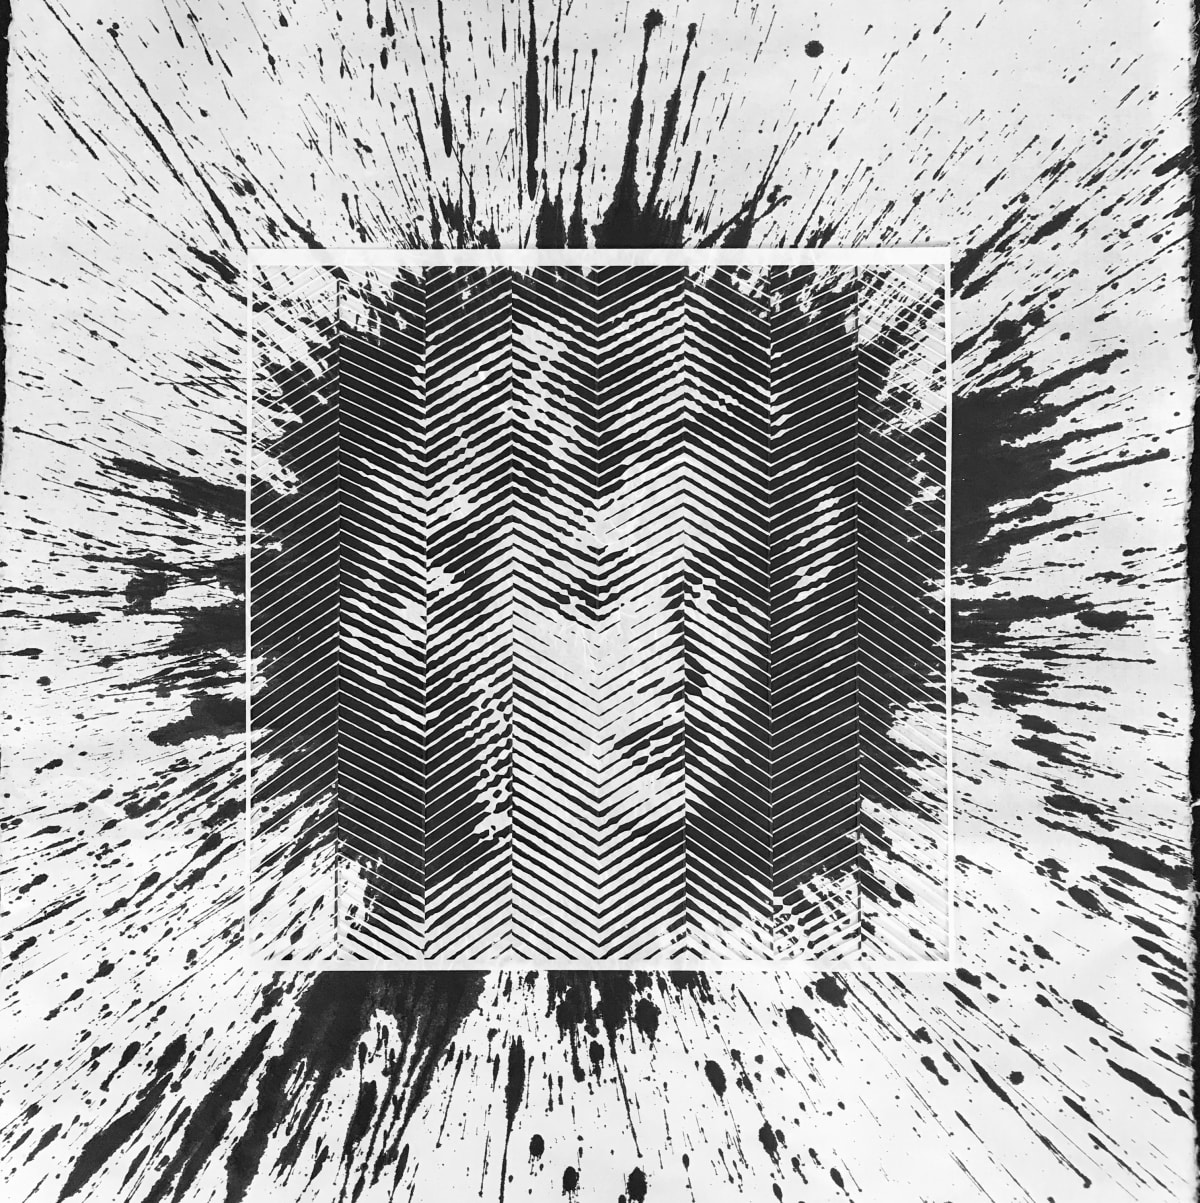 Yoo Hyun, Untitled (Marilyn Monroe), 2019